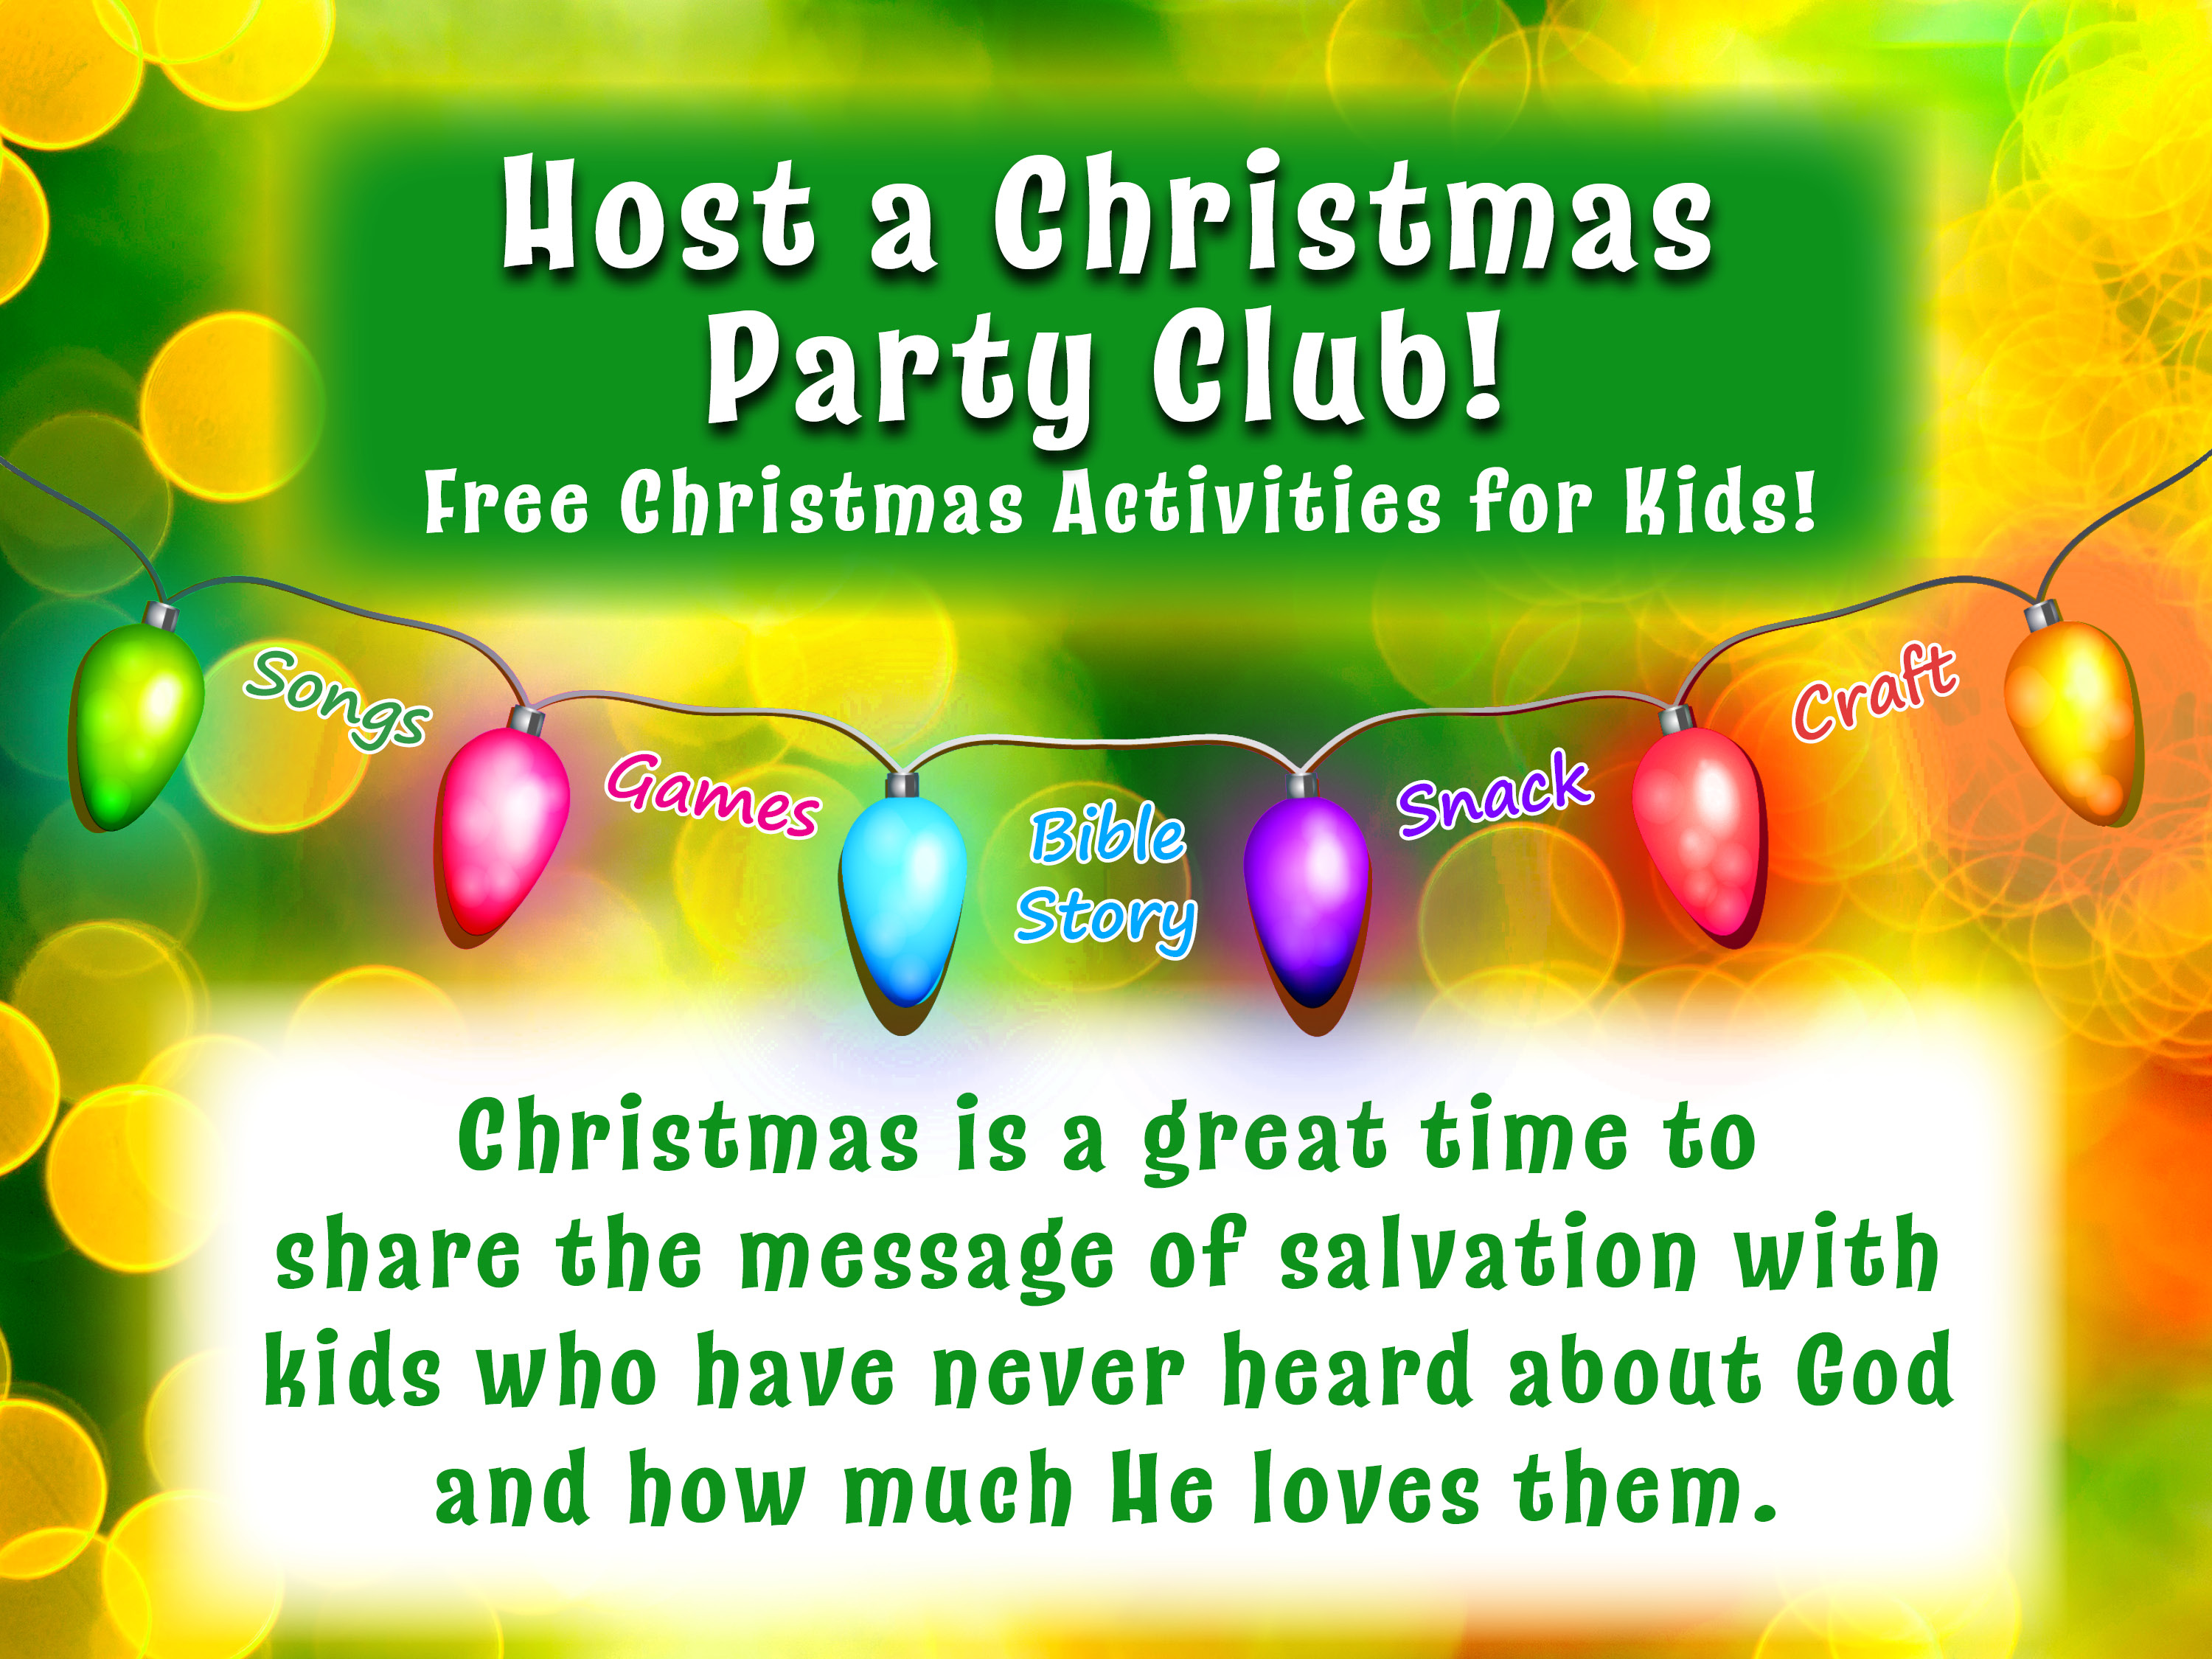 Christmas Party Club